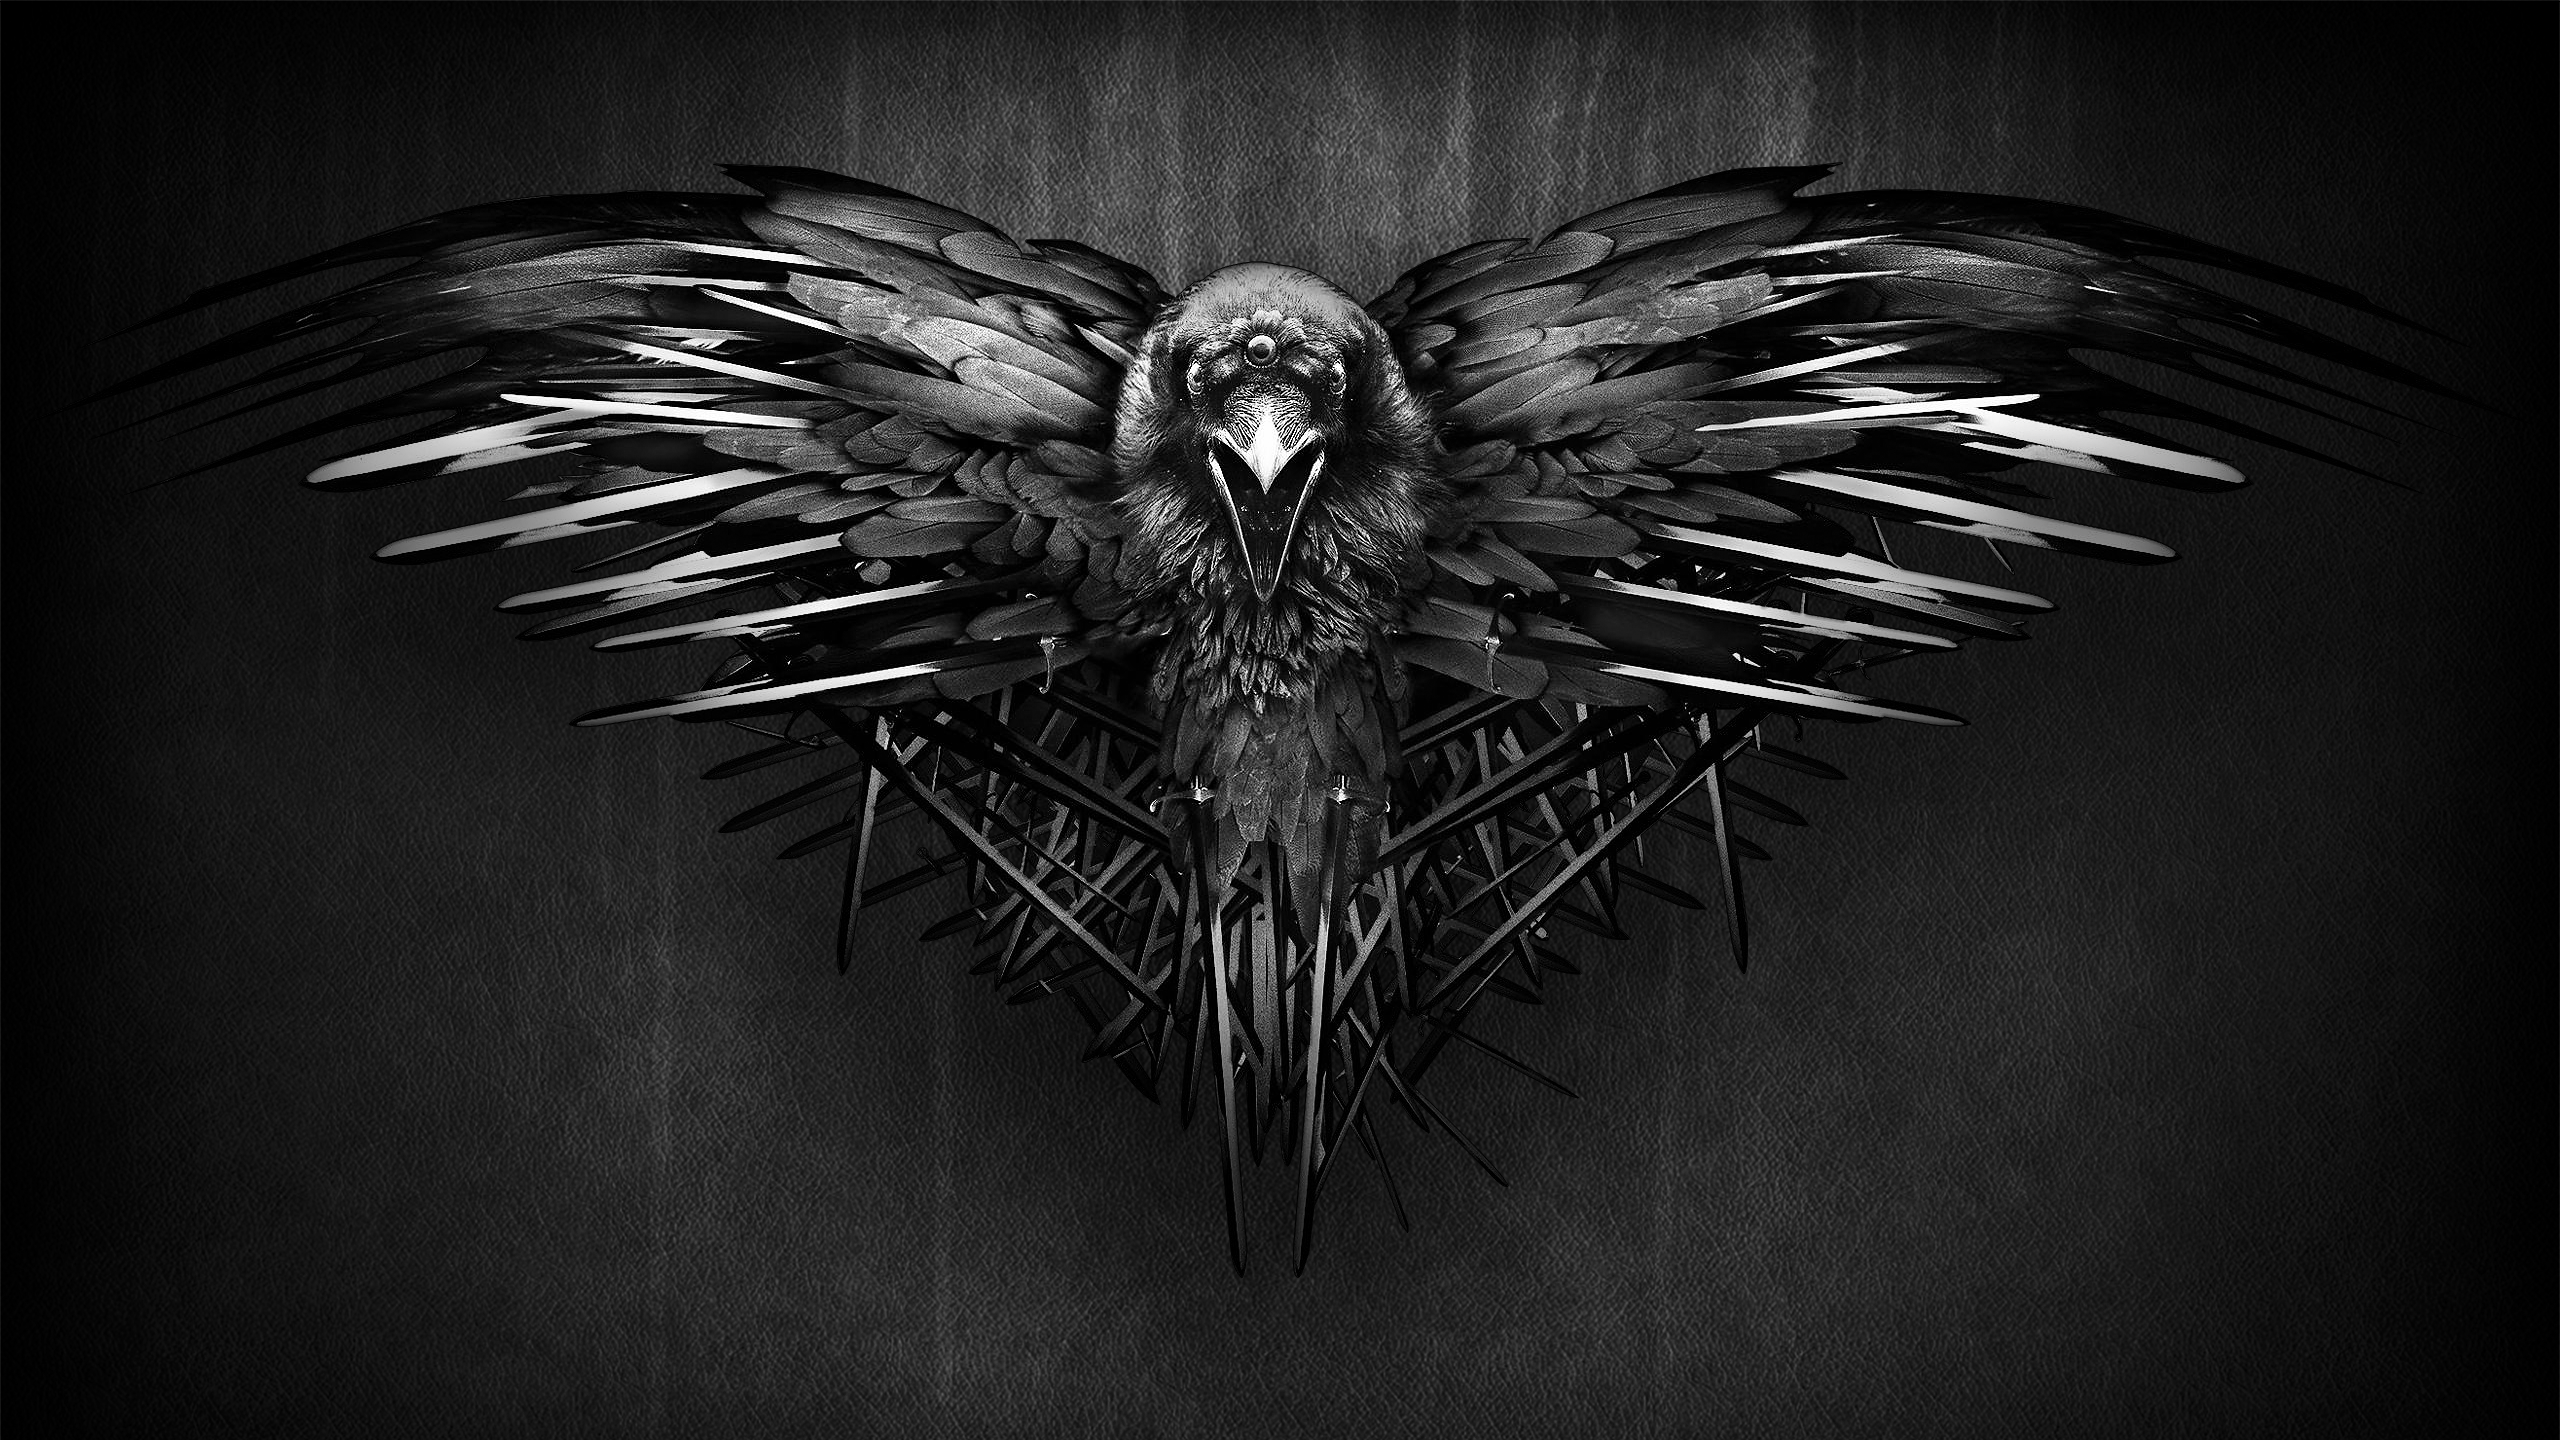 No Spoilers] Raven Wallpaper With Dark Background gameofthrones 2560x1440